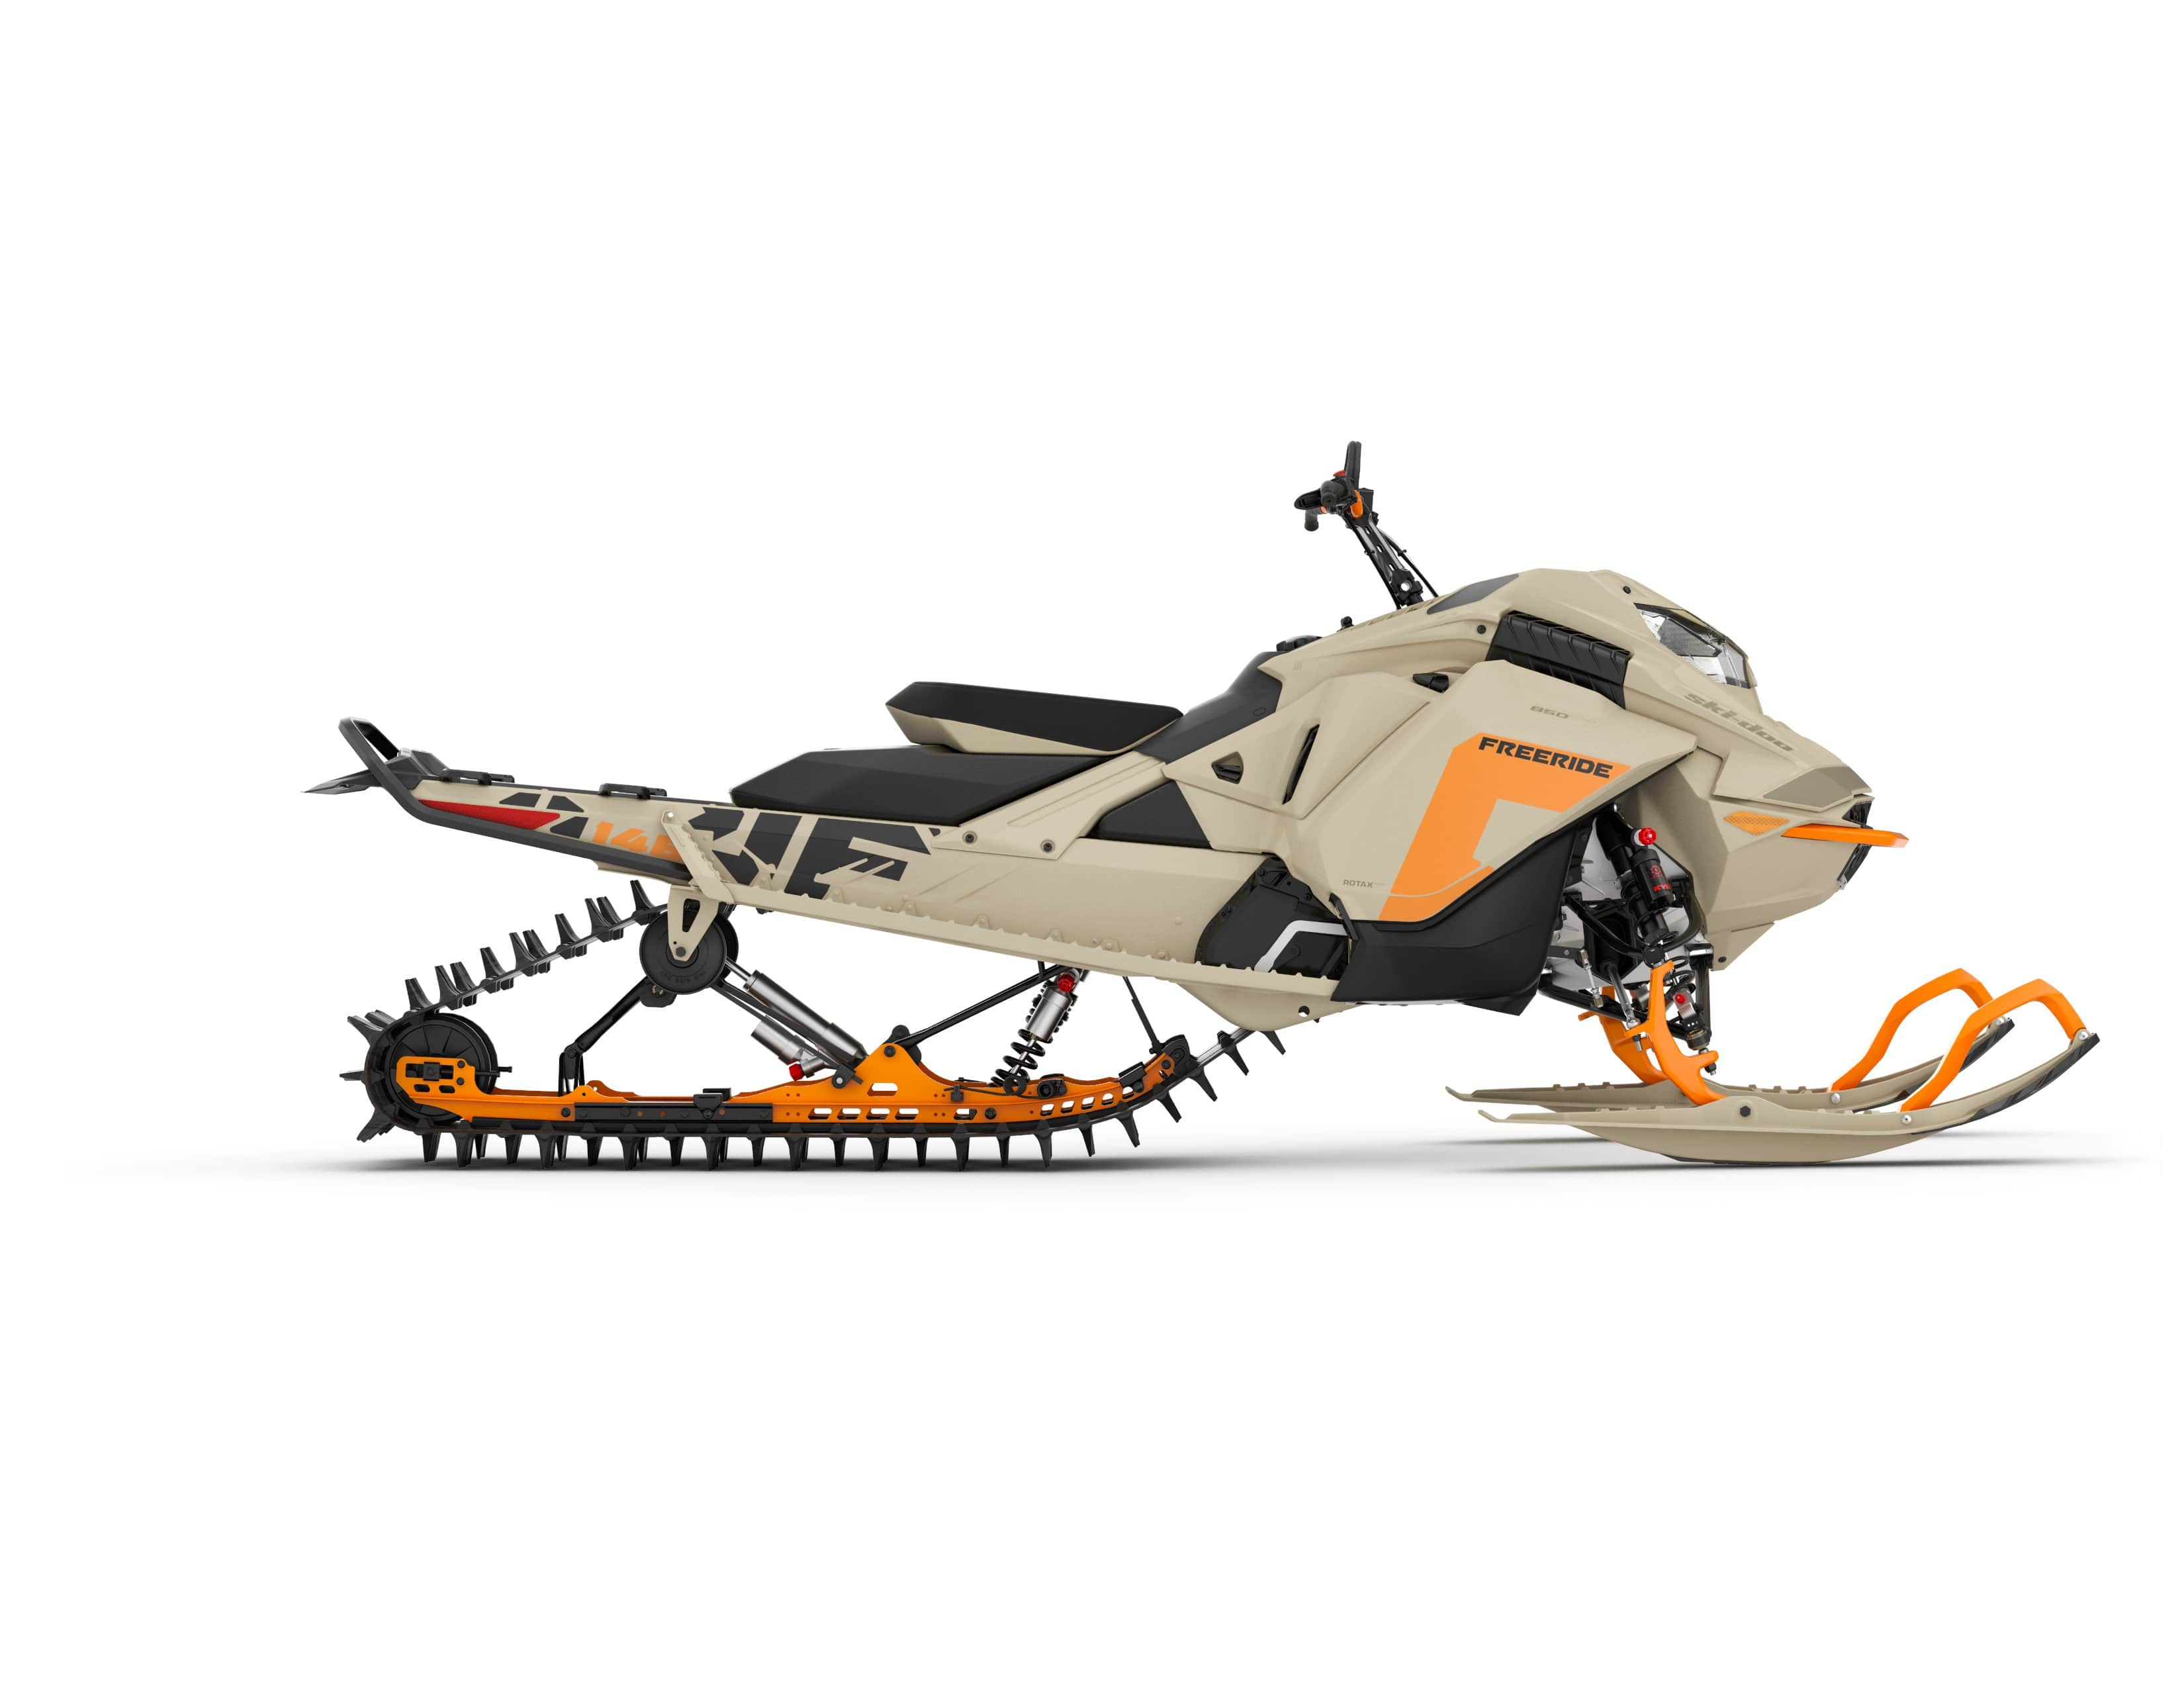 SKI-MY22-Freeride-146-850-ETEC-Arctic-Desert-sideview copy